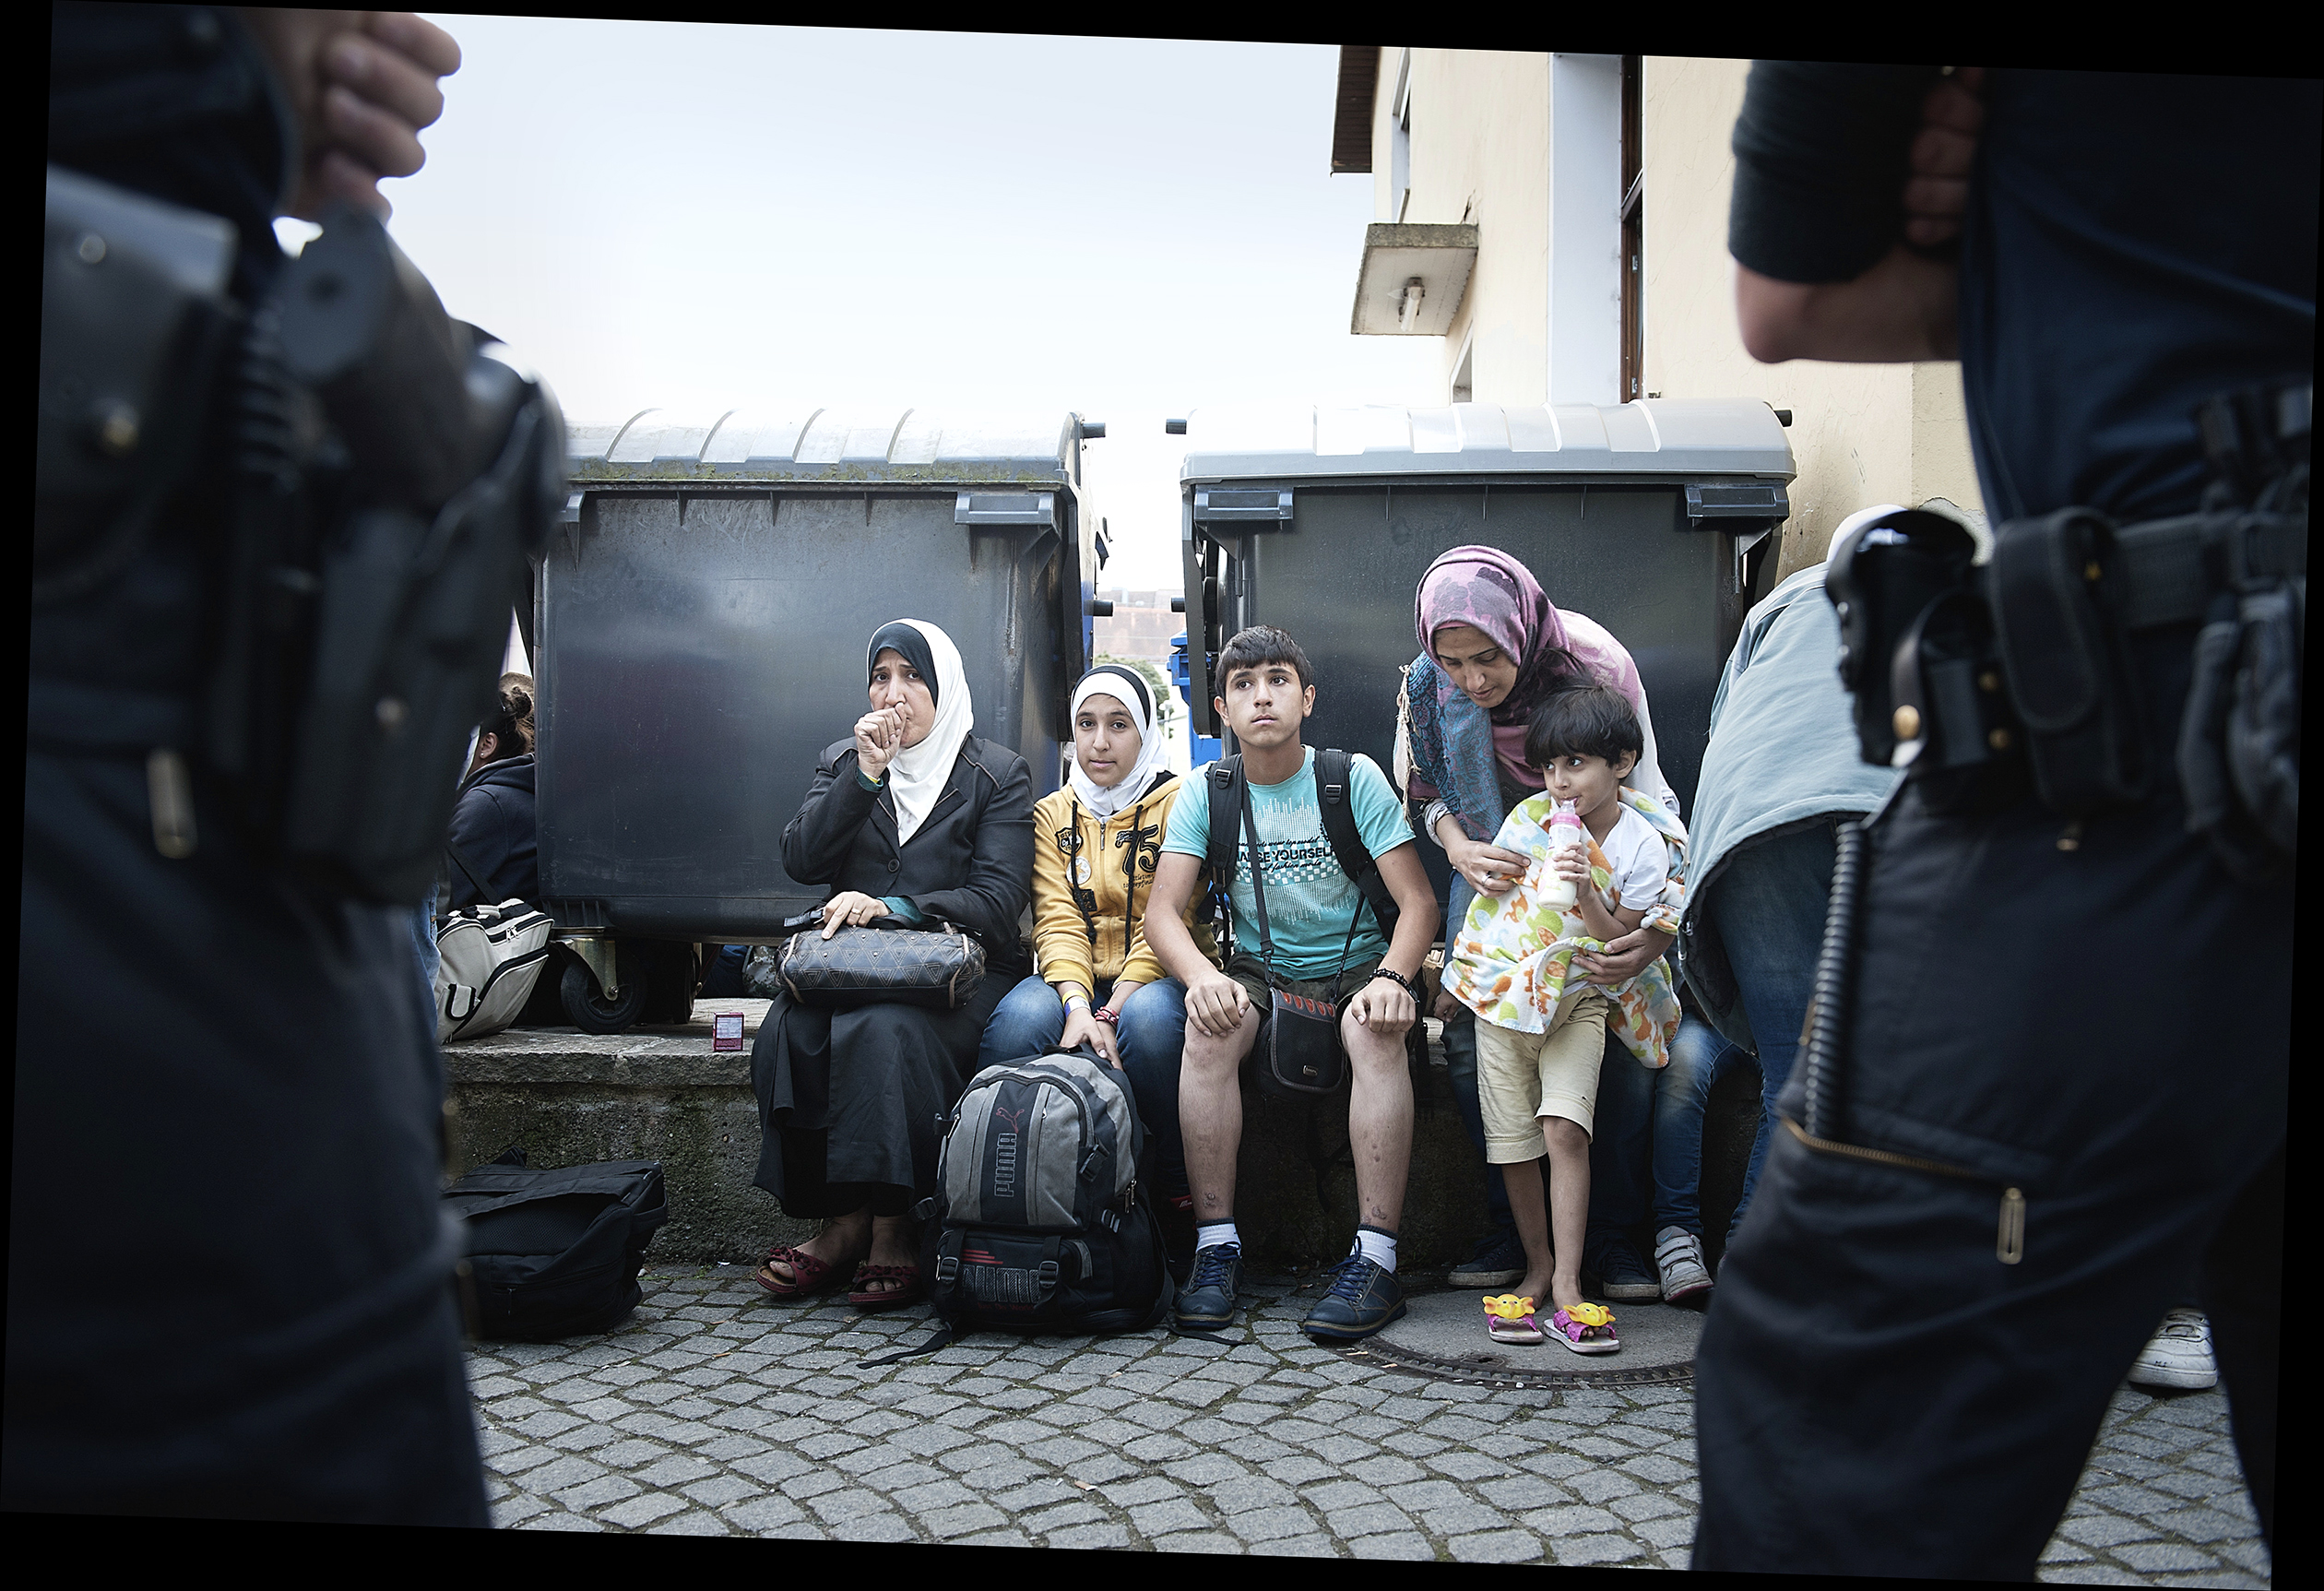 Recently arrived migrants at a train station wait to be put on buses in Passau.